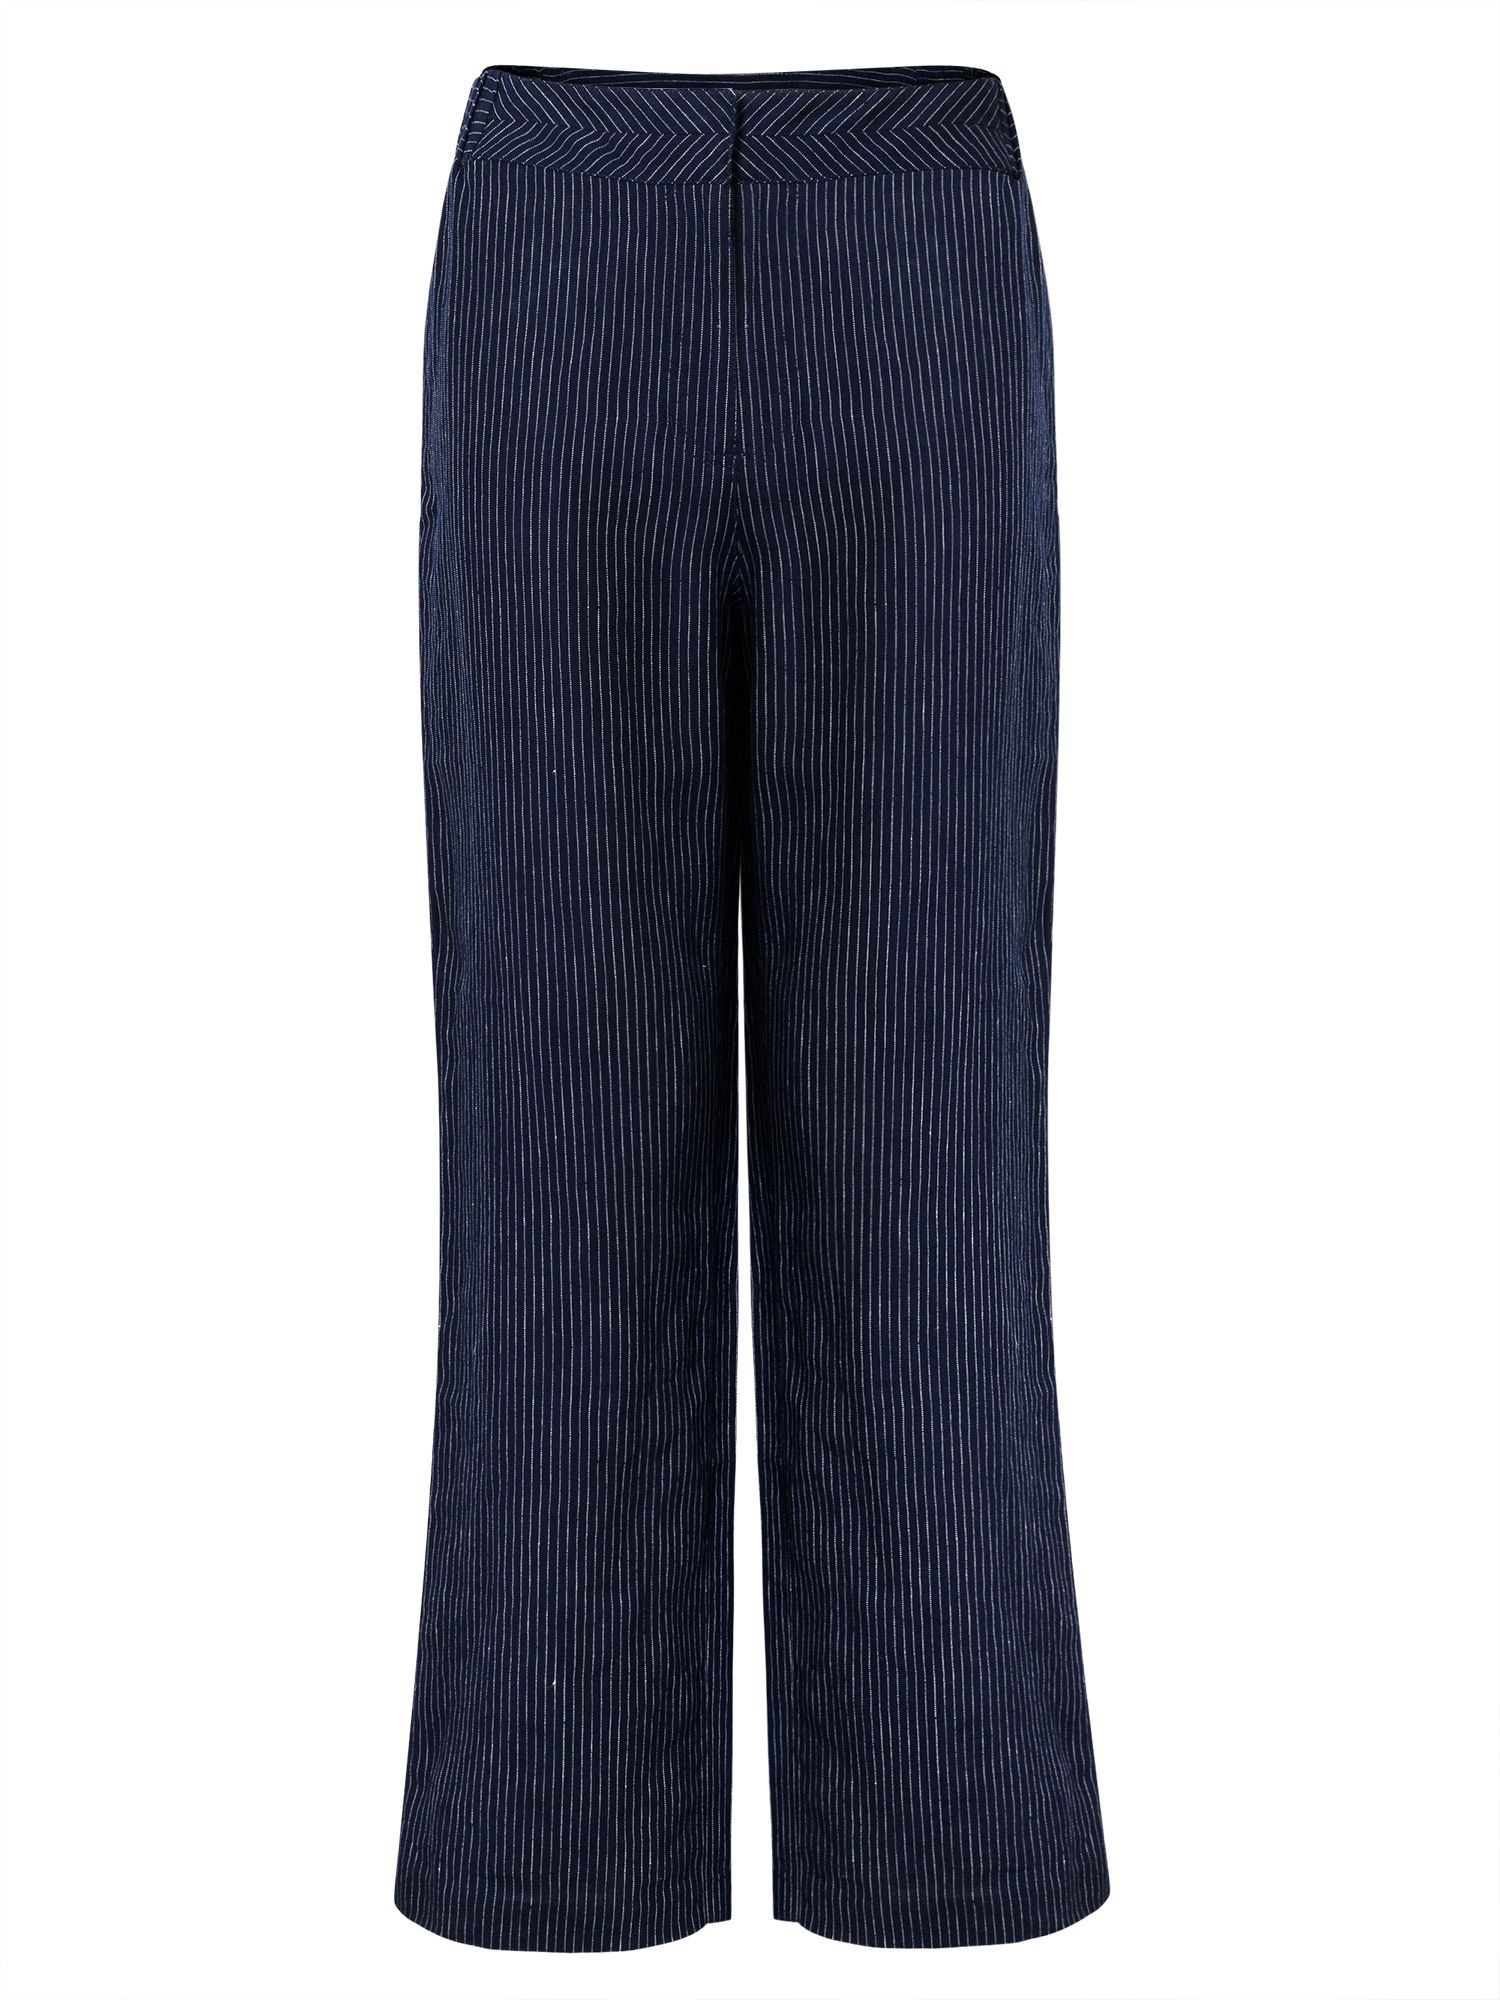 East Linen Stripe Trouser, Blue